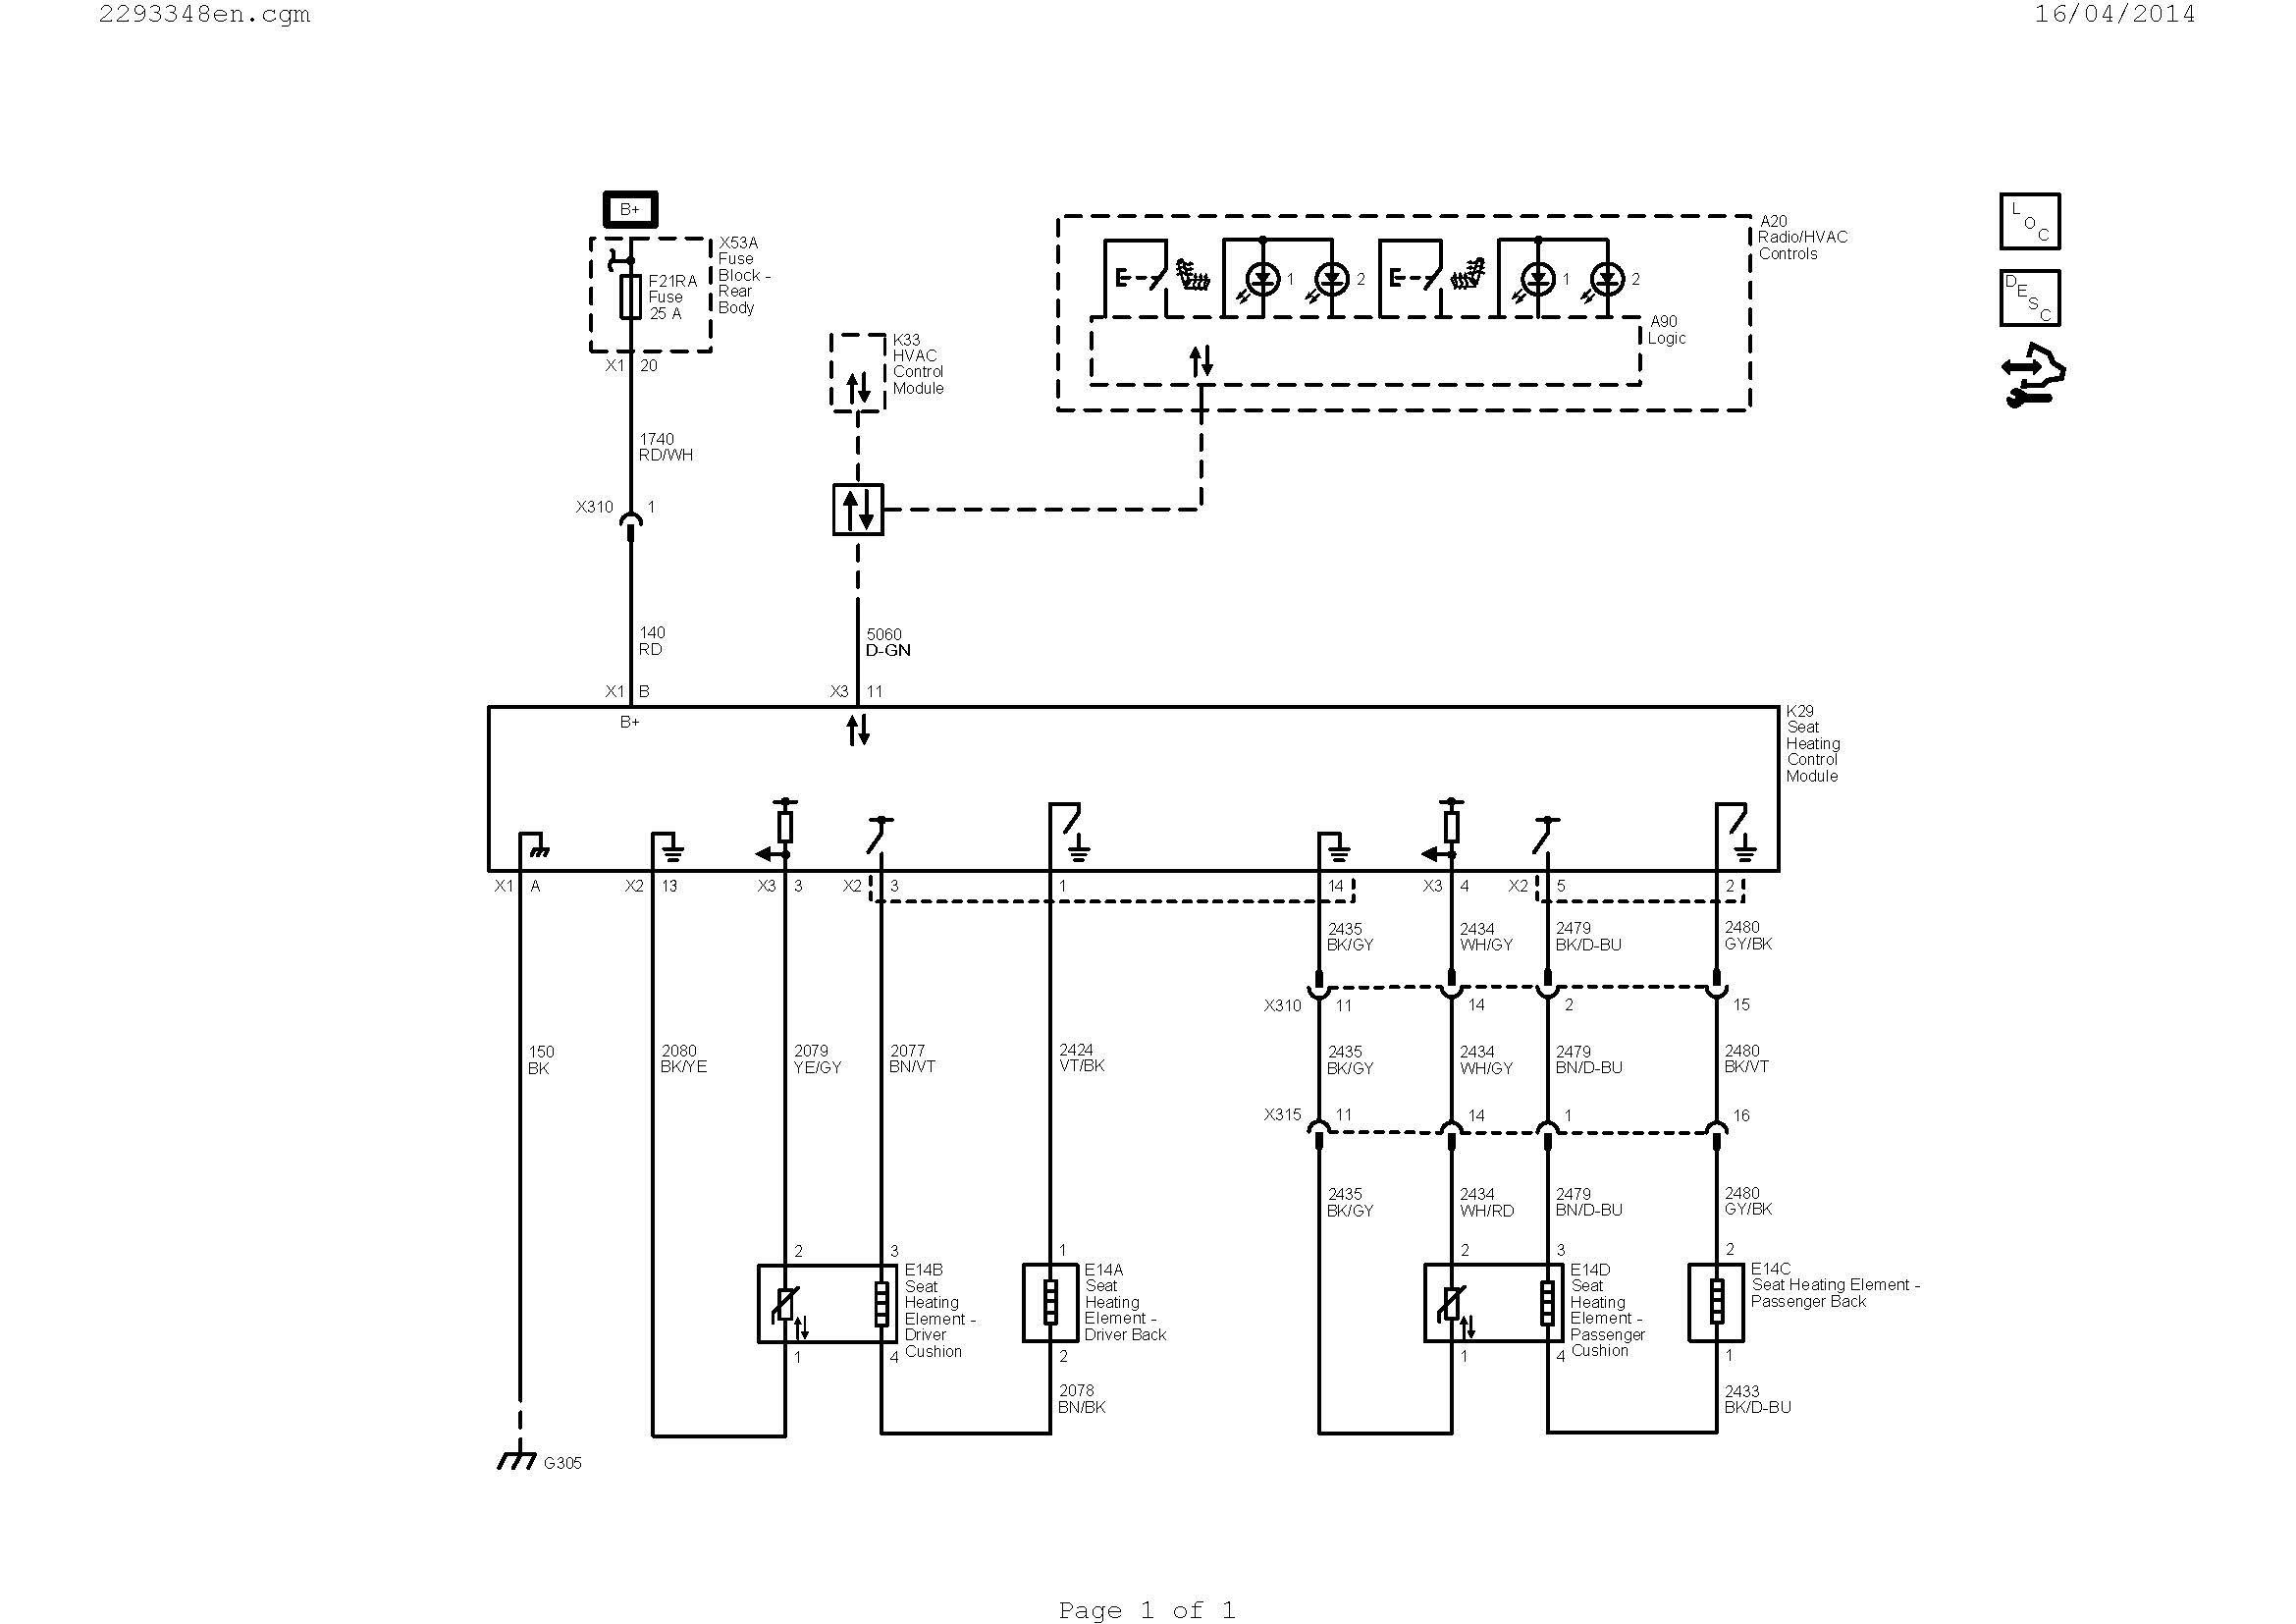 acme transformer t 1 81051 wiring diagram Download-fan wiring diagram Collection Wiring Diagram For Changeover Relay Inspirationa Wiring Diagram Ac Valid Hvac DOWNLOAD Wiring Diagram 6-g